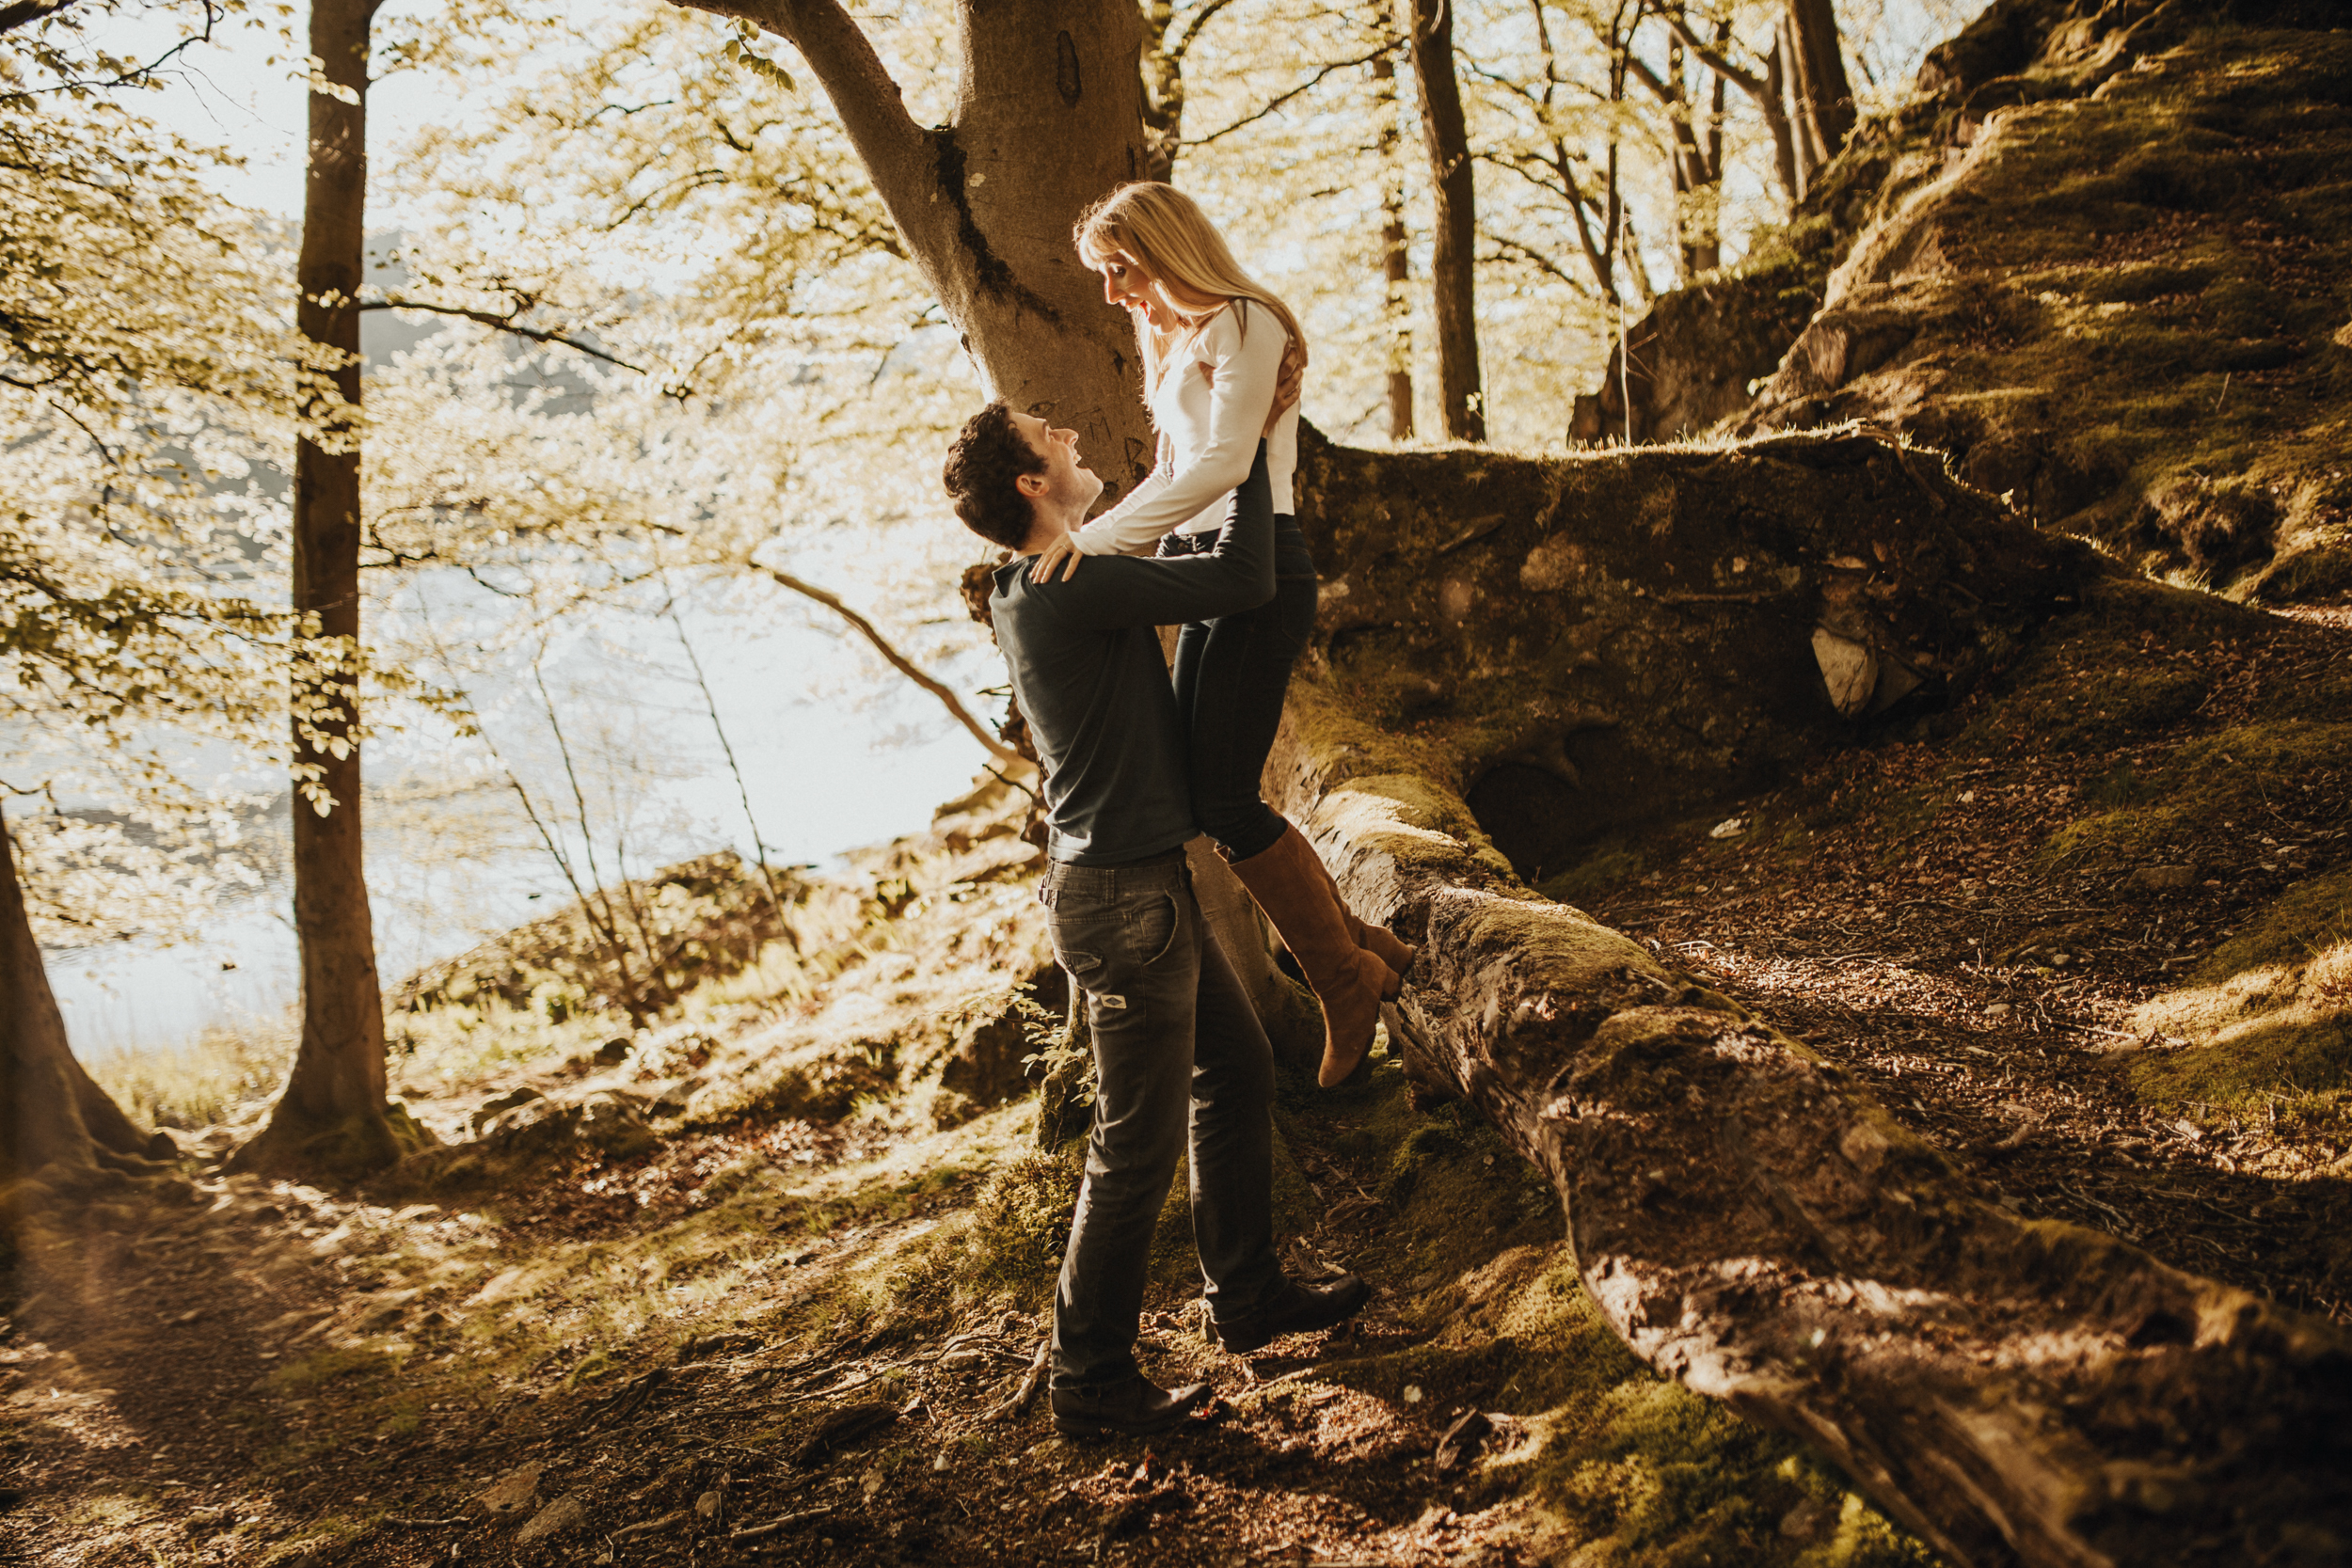 Claire-Clive-Engagement-Shoot-Lake-District-Darina-Stoda-Photography-55.jpg